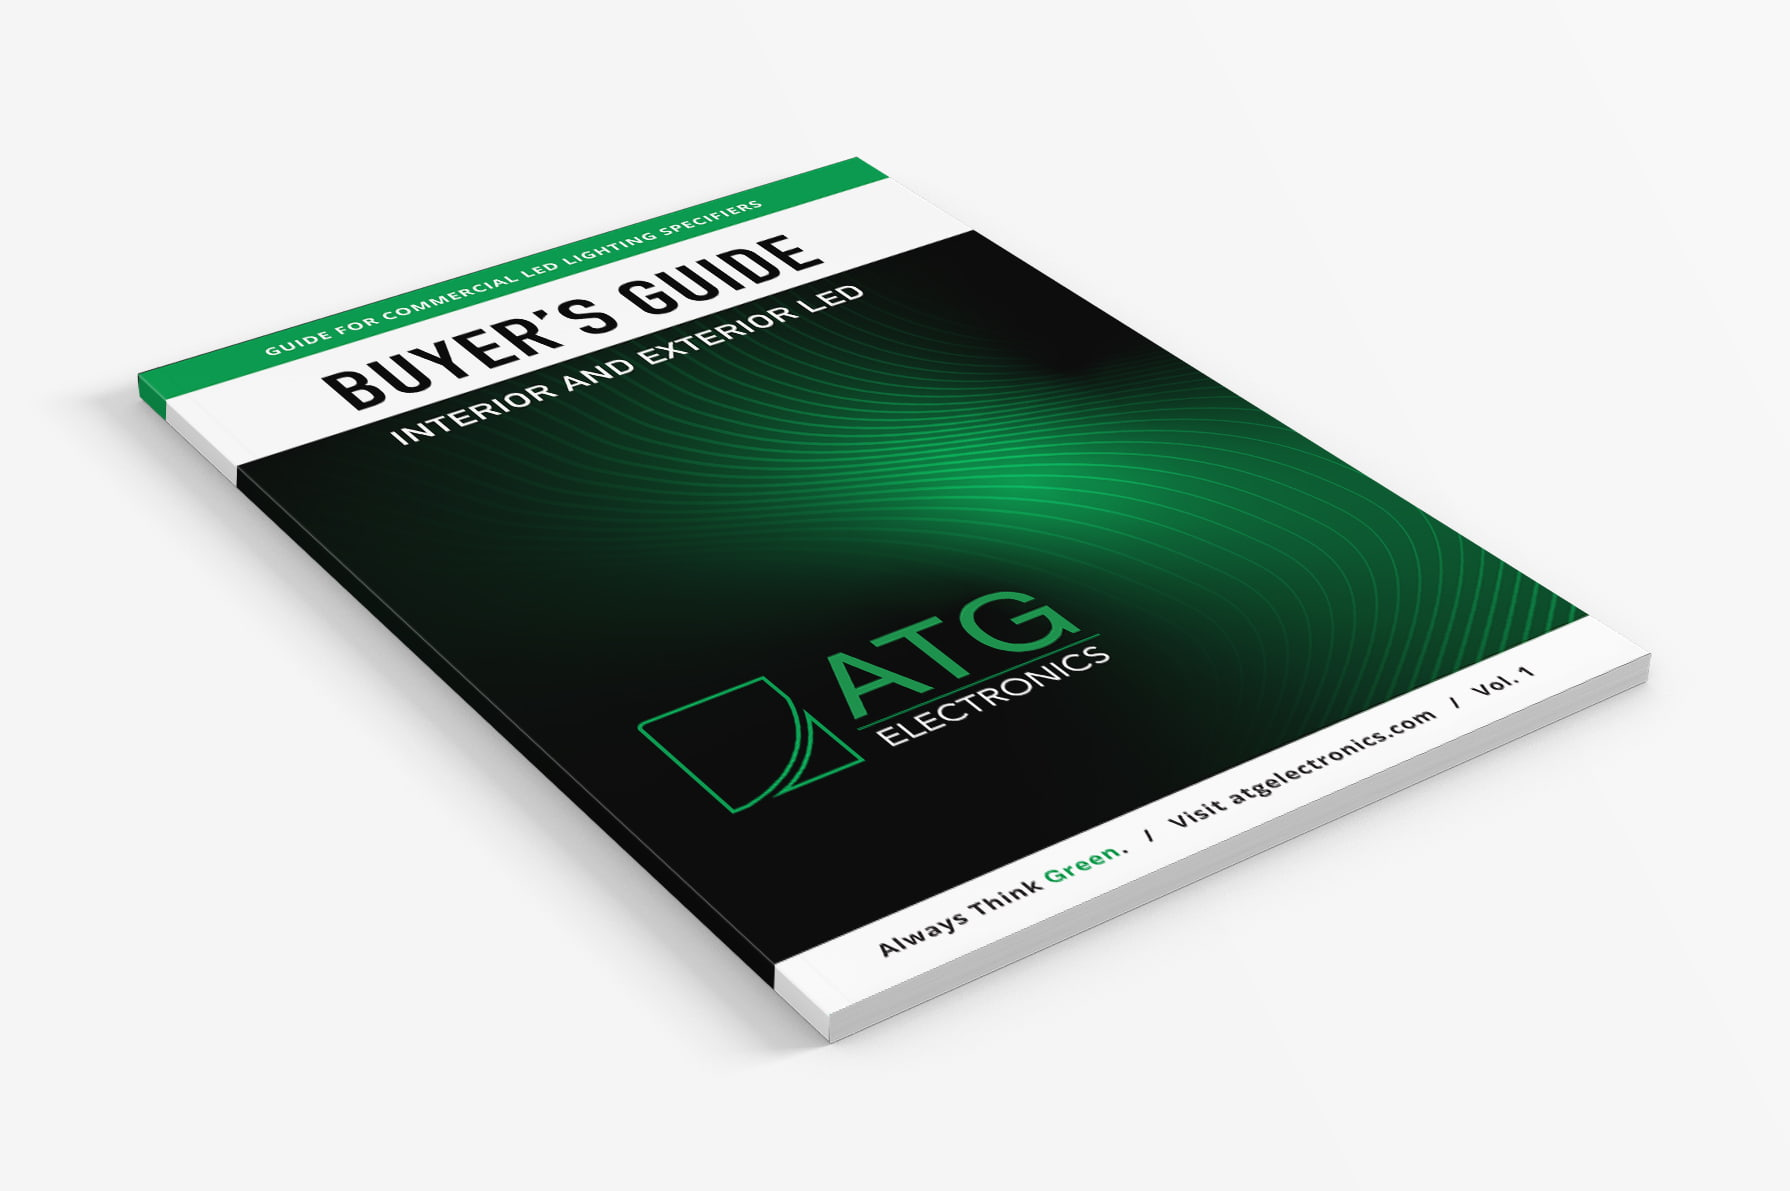 ATG Buyer's Guide